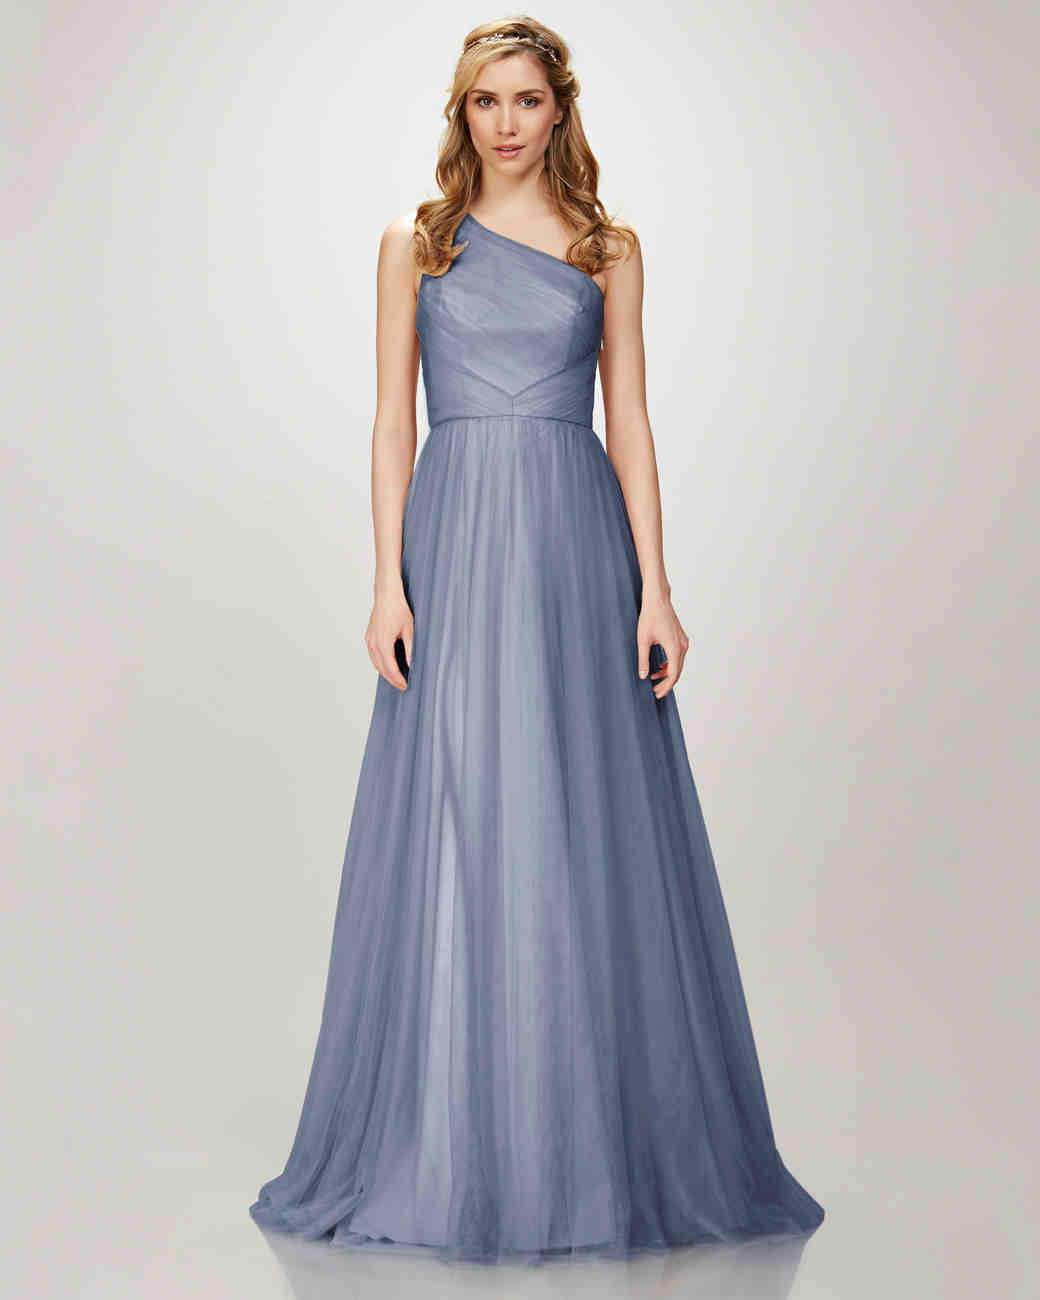 Winter bridesmaid dresses for a cold weather wedding martha winter bridesmaid dresses for a cold weather wedding martha stewart weddings ombrellifo Gallery